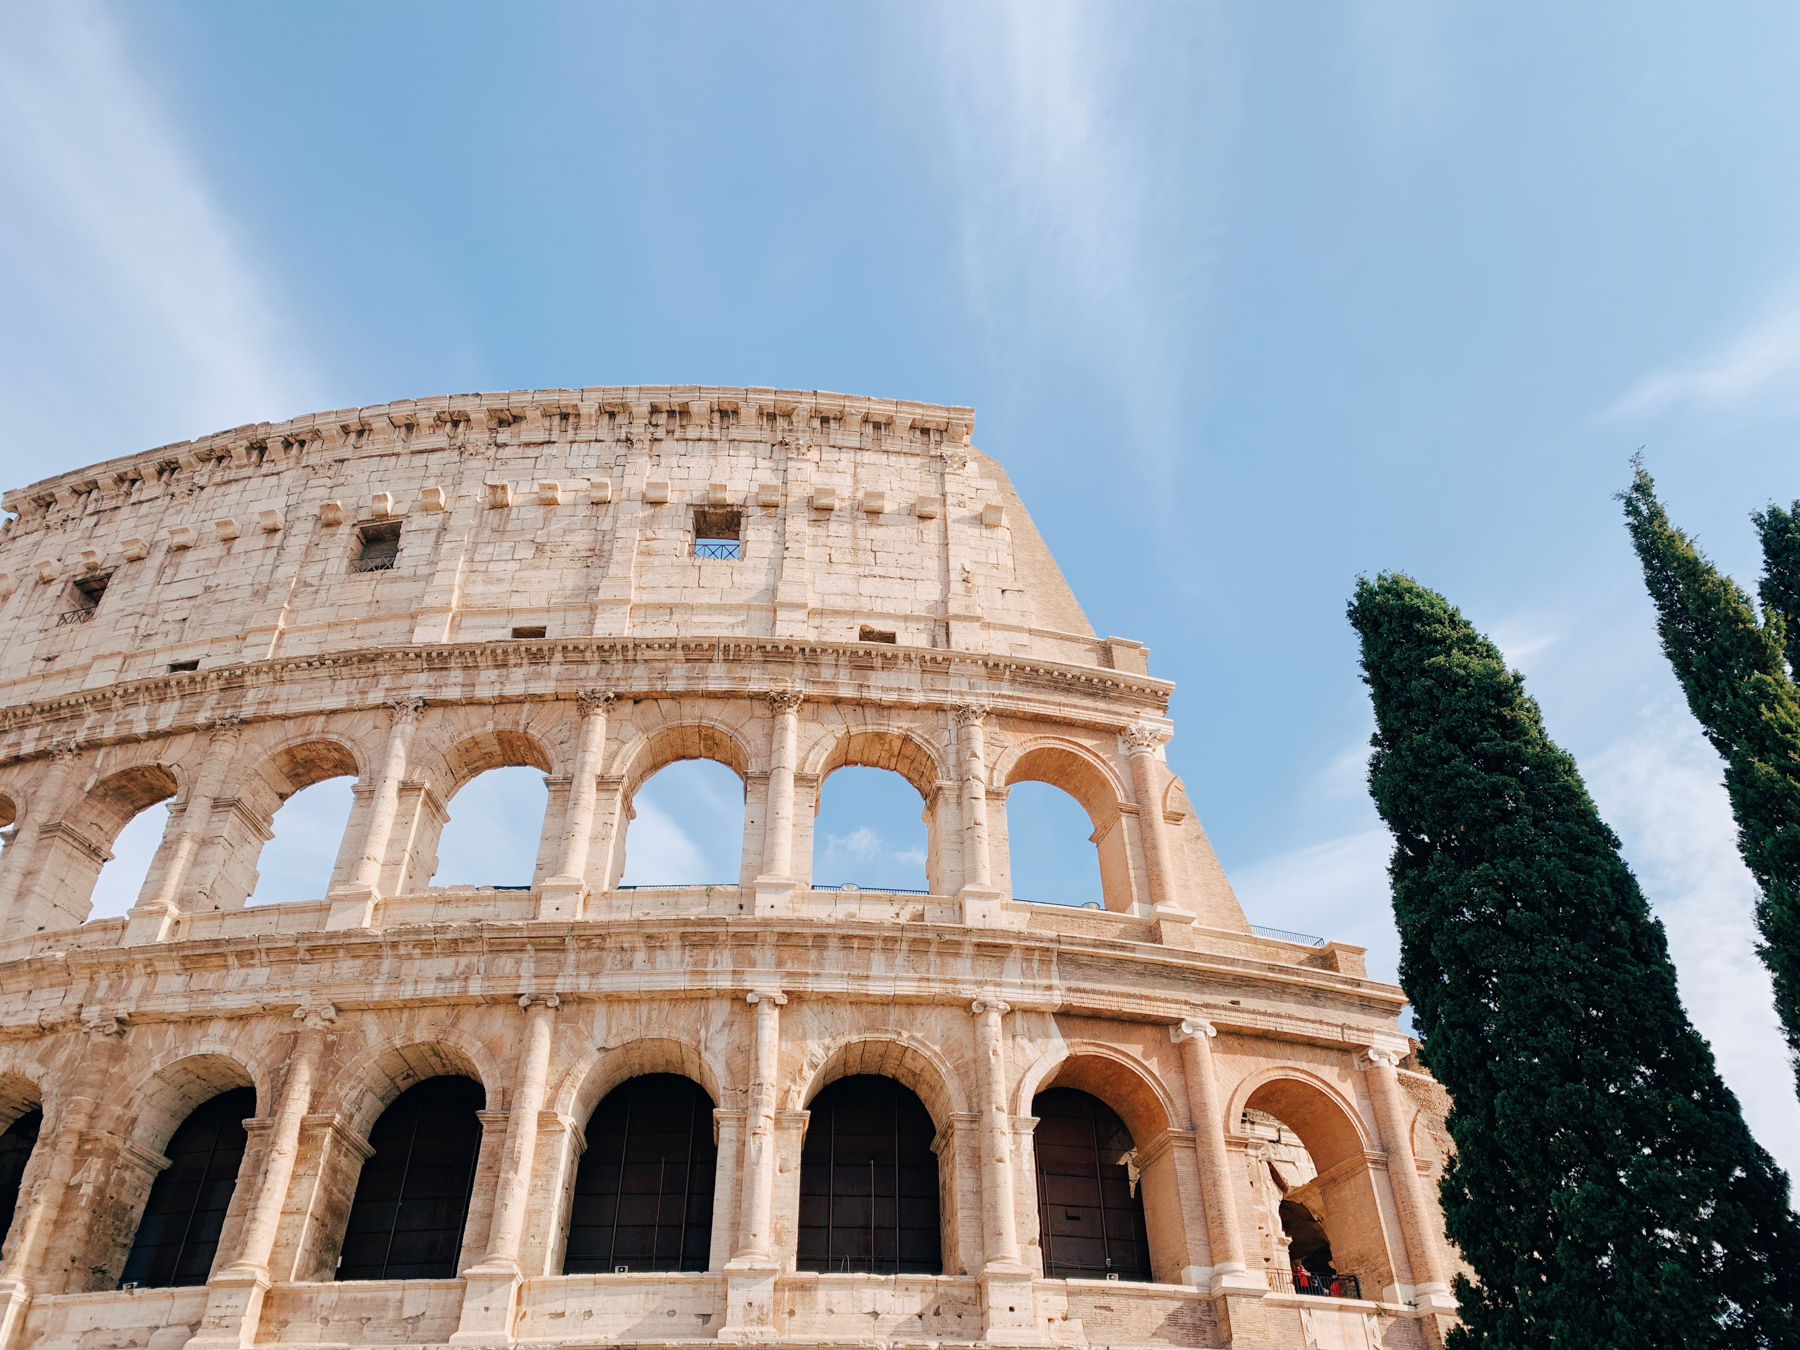 The Colosseum tour was one of my favorite things we did in Italy.